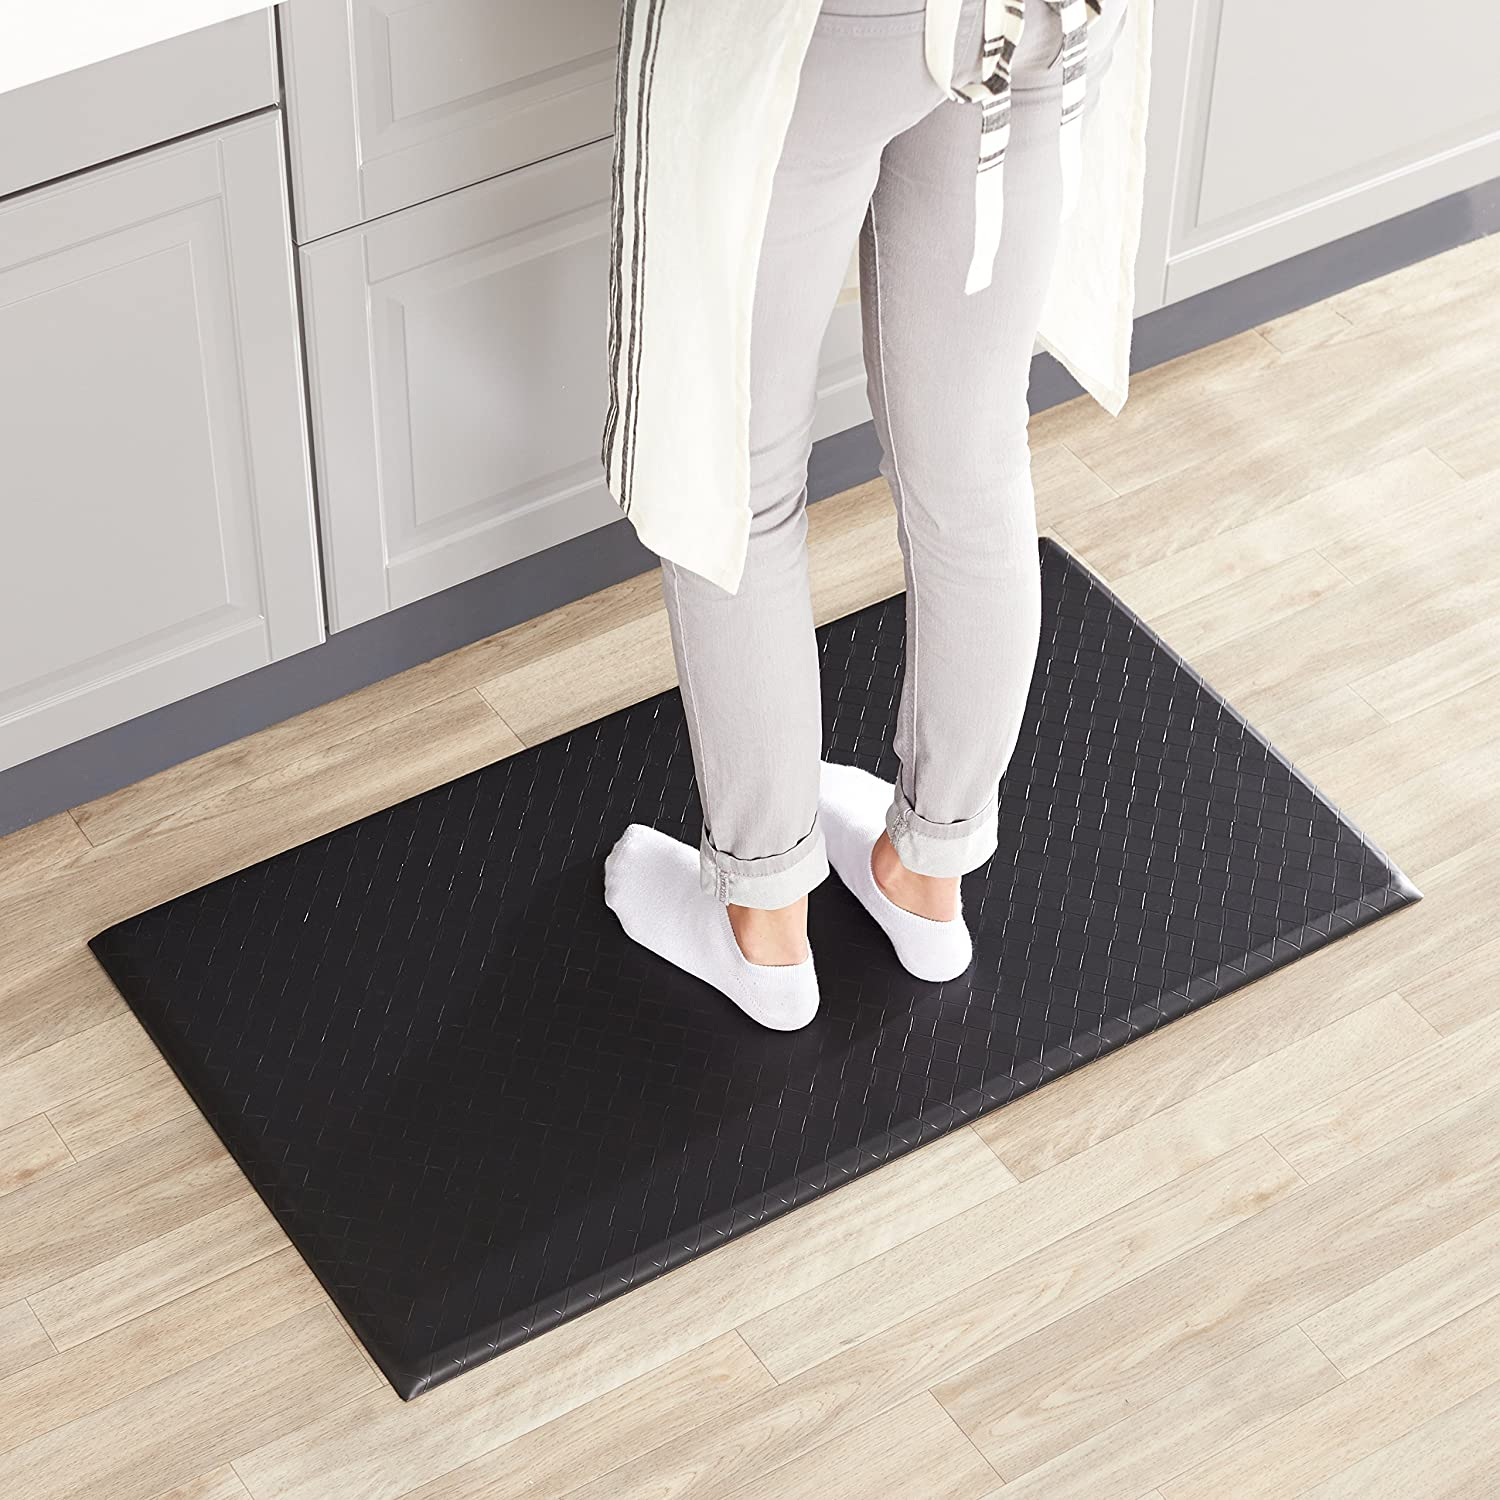 Anti Fatigue Kitchen Floor Mats: Comfort Floor Mat Anti Fatigue Kitchen Standing Desk Foam